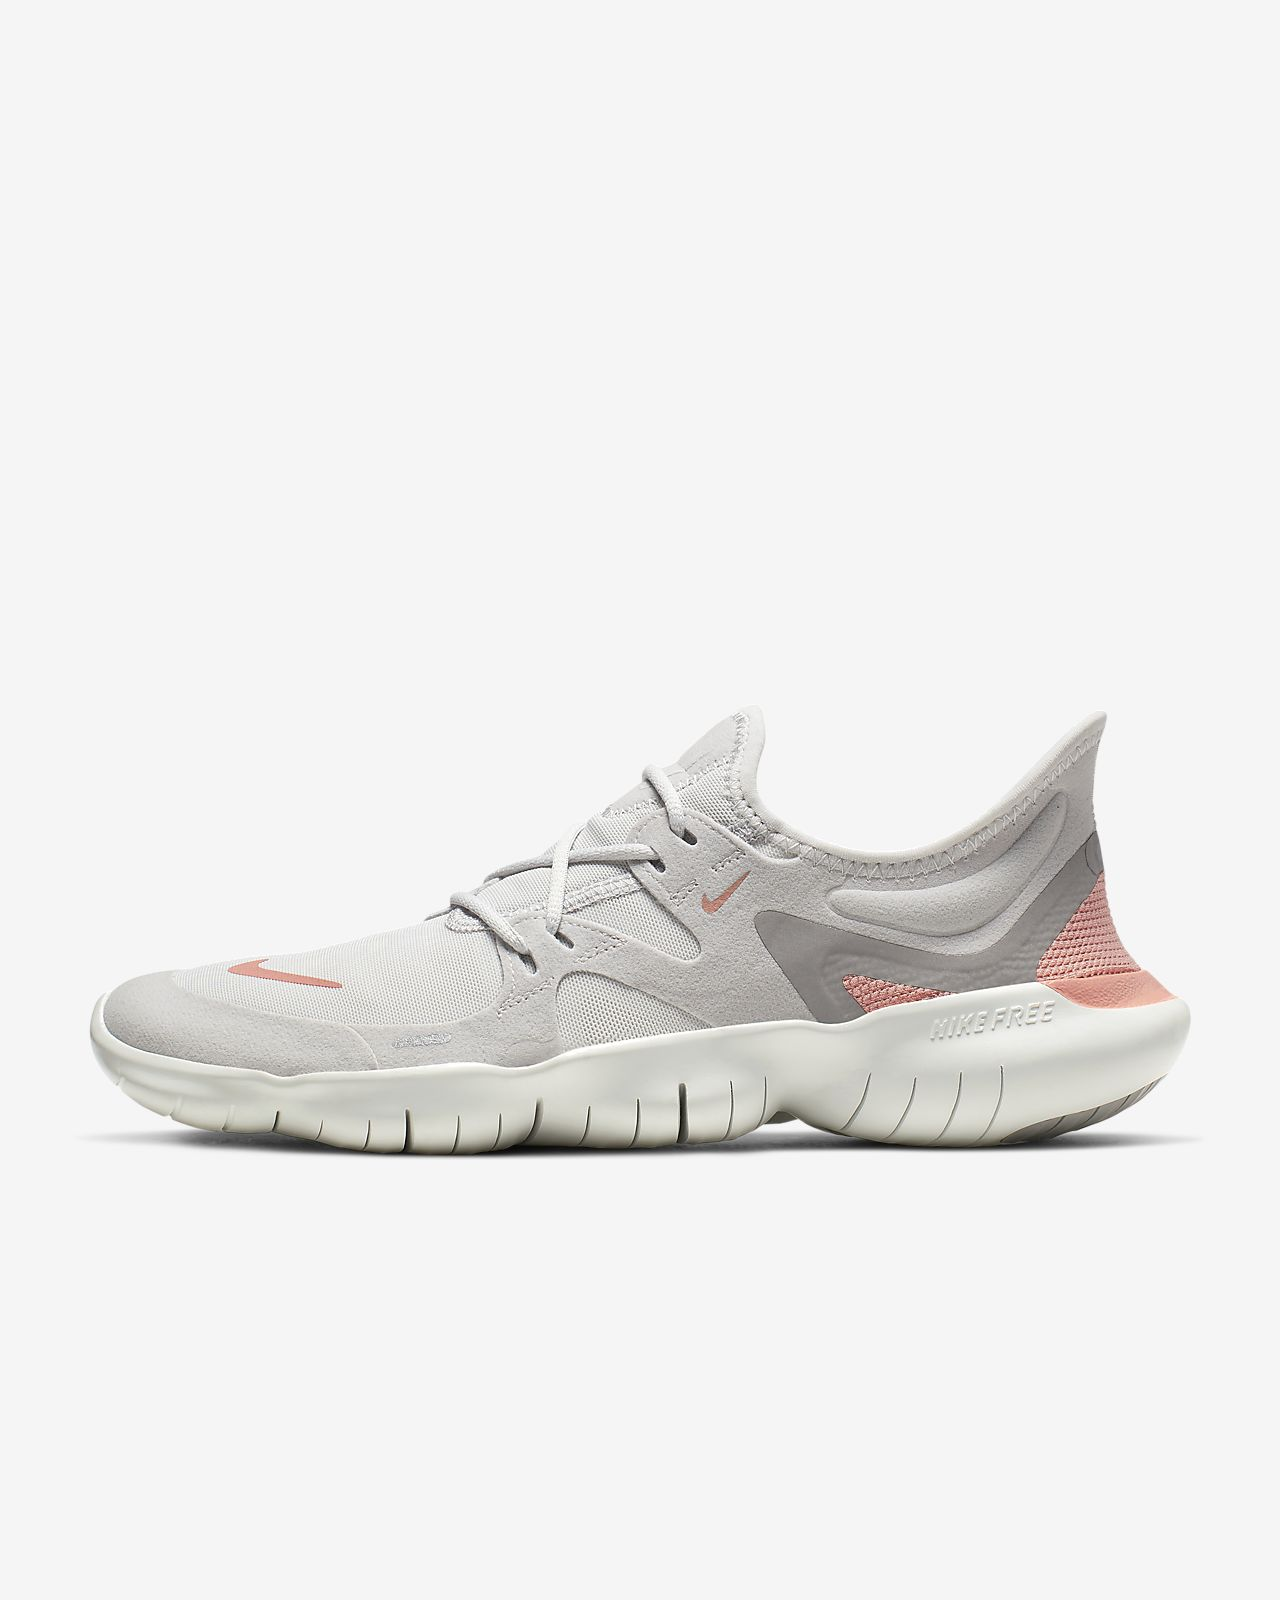 new arrival 246b0 ee361 Nike Free RN 5.0 Women's Running Shoe